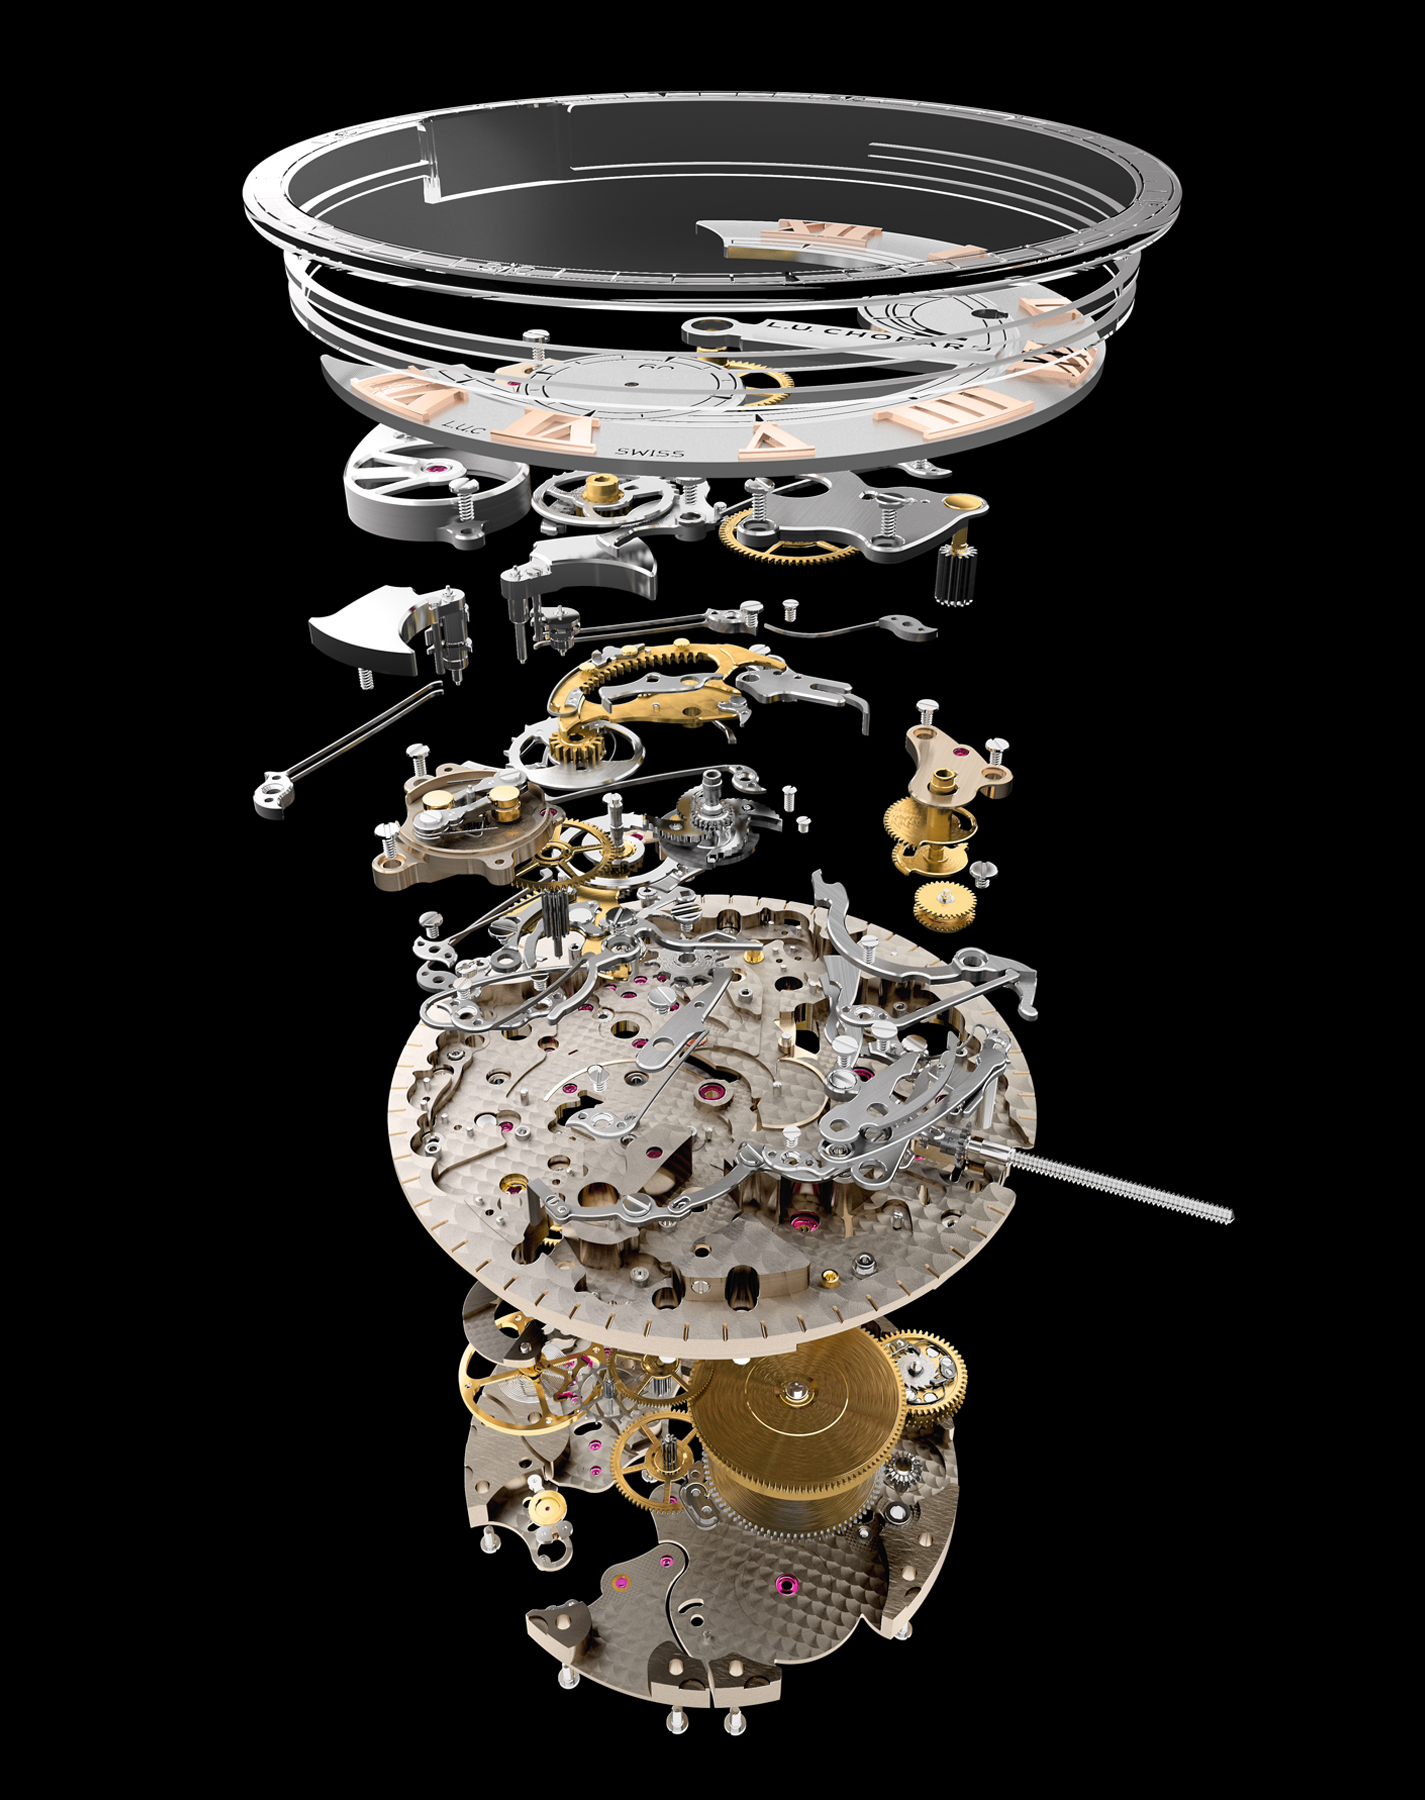 Exploded view of the mechanical movement of the LUC Full strike watch